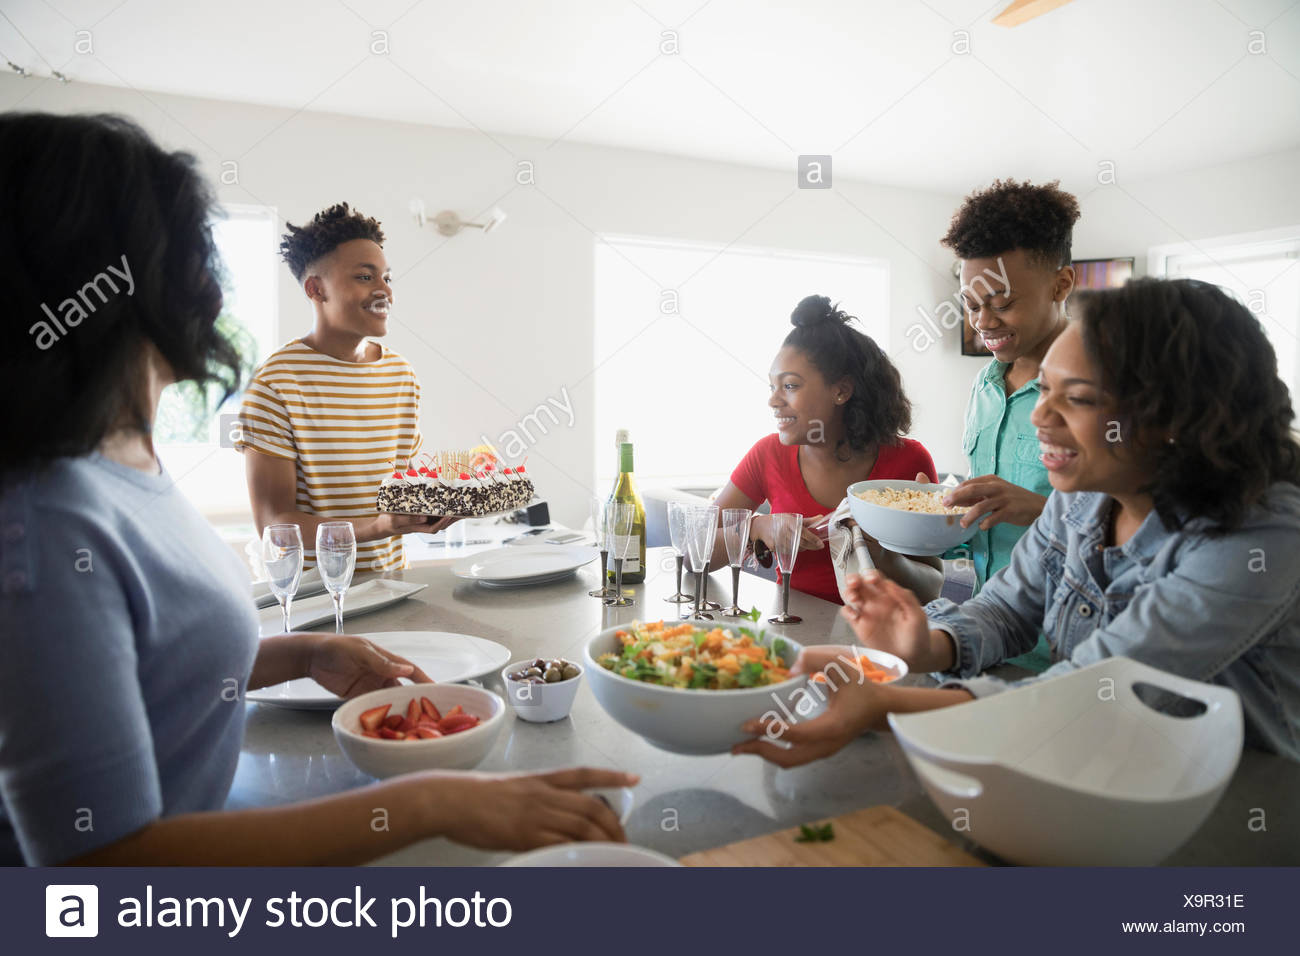 African American family cooking and eating in kitchen - Stock Image